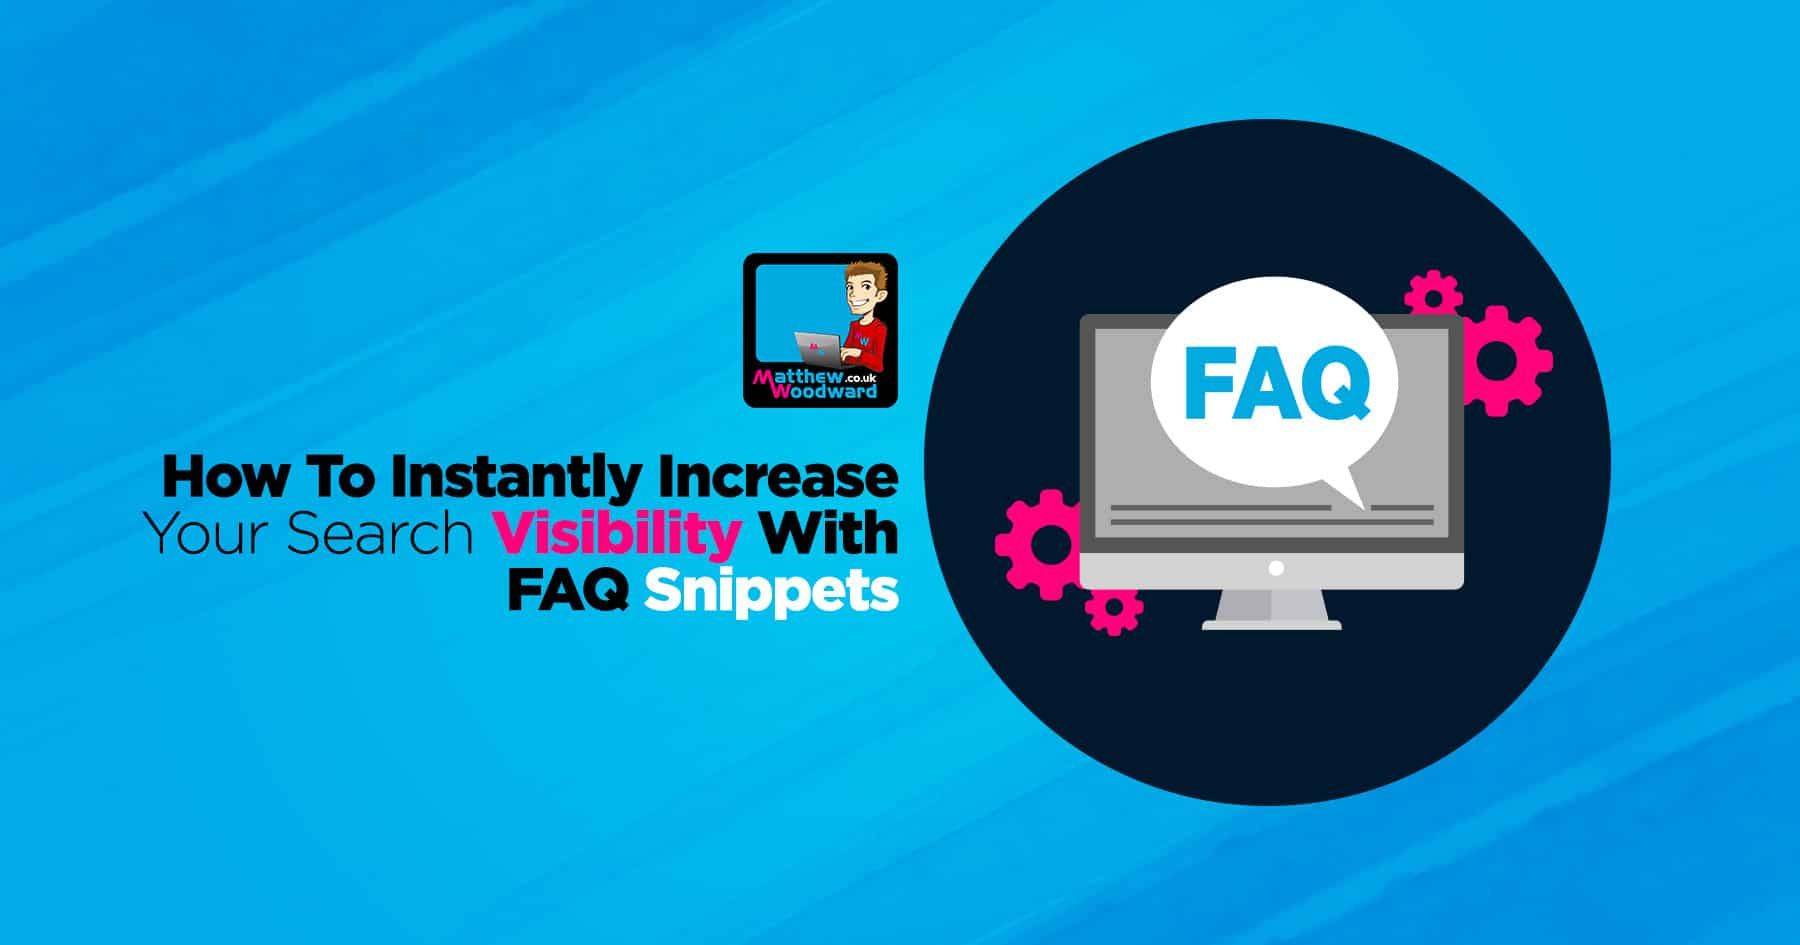 How To Increase Search Visibility With FAQ Rich Snippets